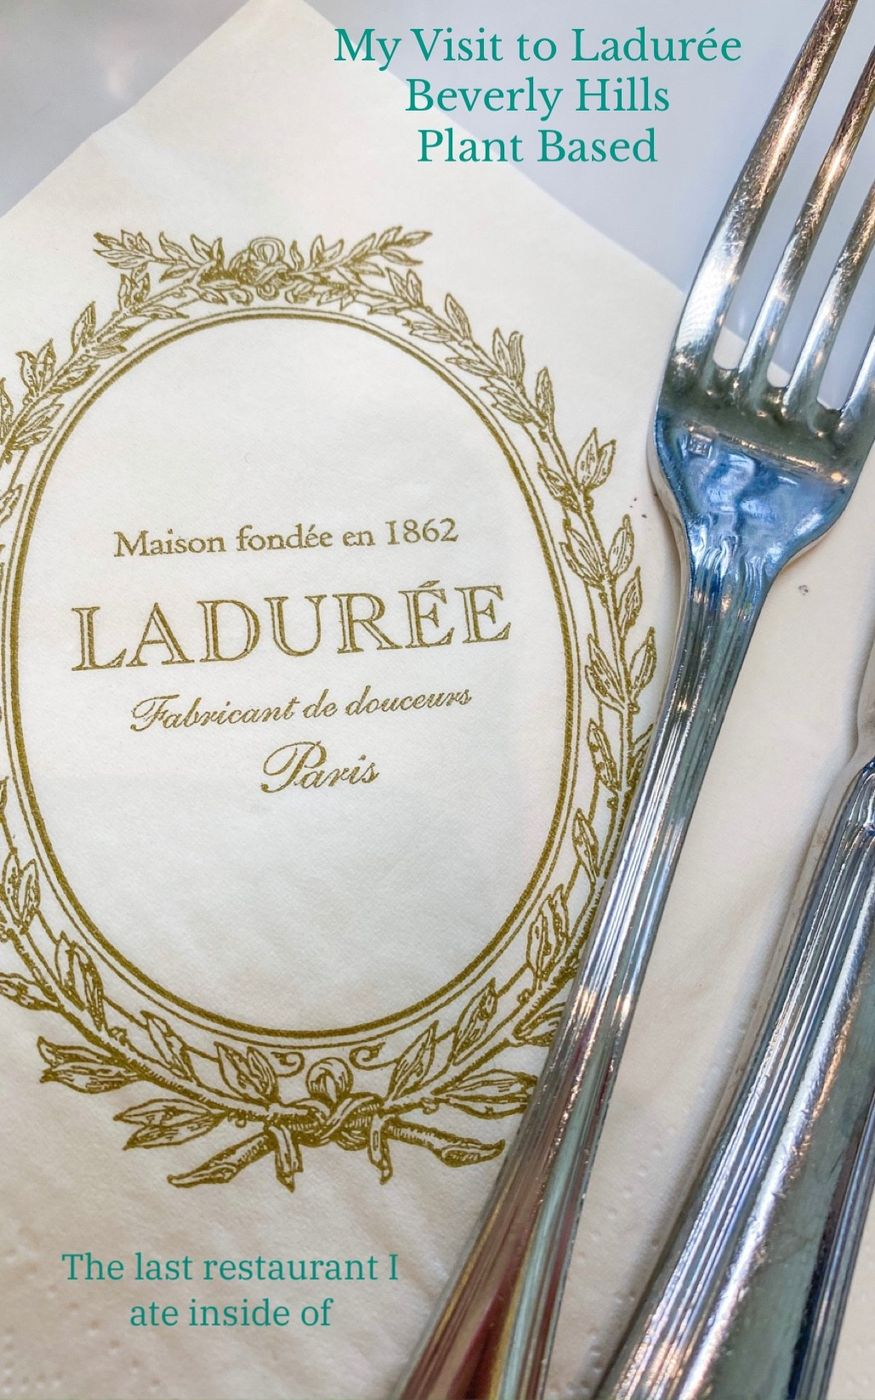 My visit to Ladurée Beverly Hills, a fully plant based French restaurant.